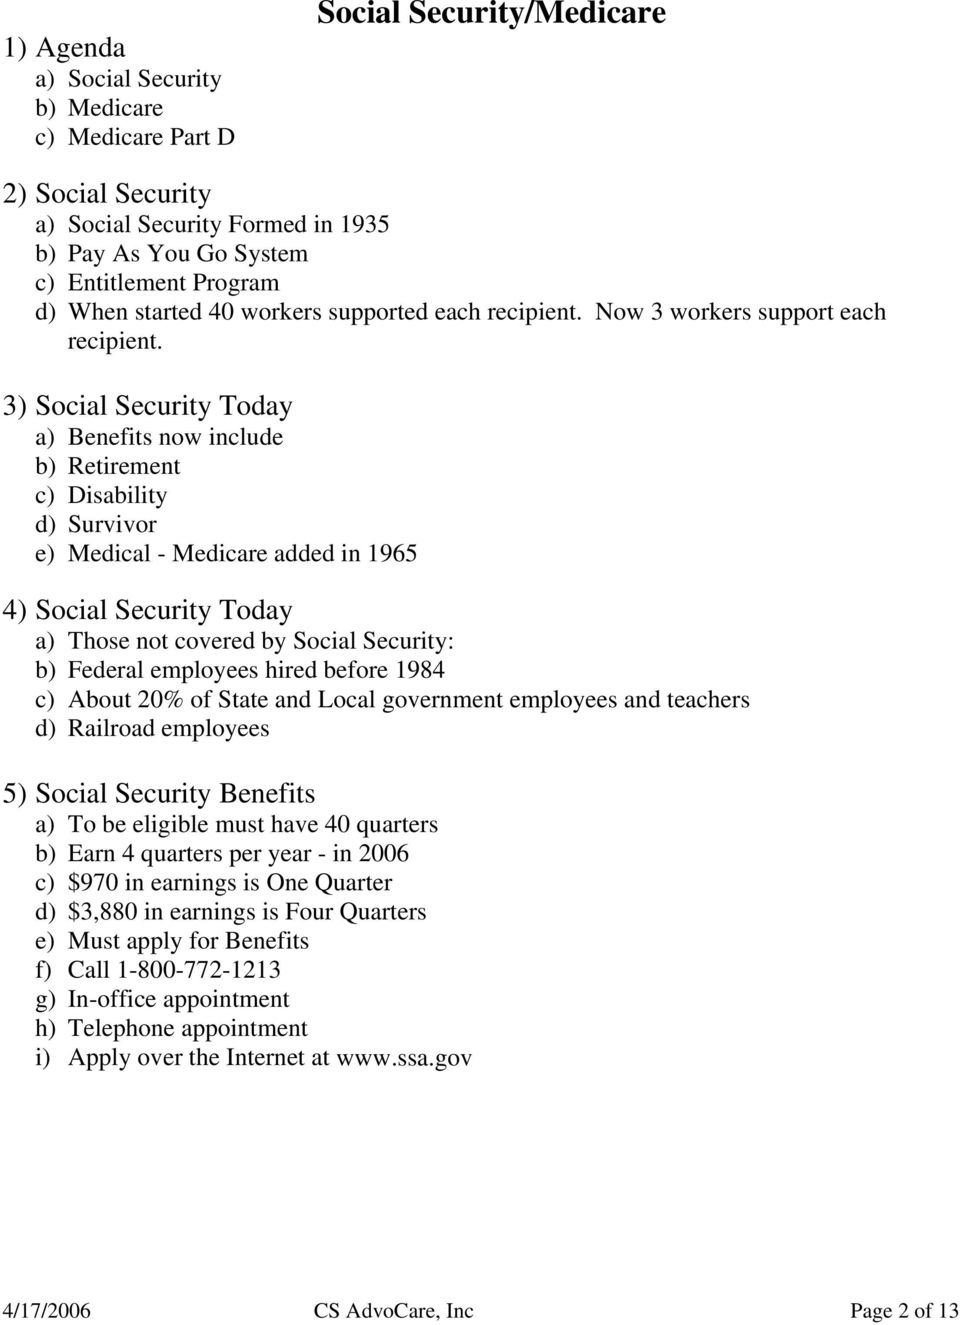 3) Social Security Today a) Benefits now include b) Retirement c) Disability d) Survivor e) Medical - Medicare added in 1965 4) Social Security Today a) Those not covered by Social Security: b)